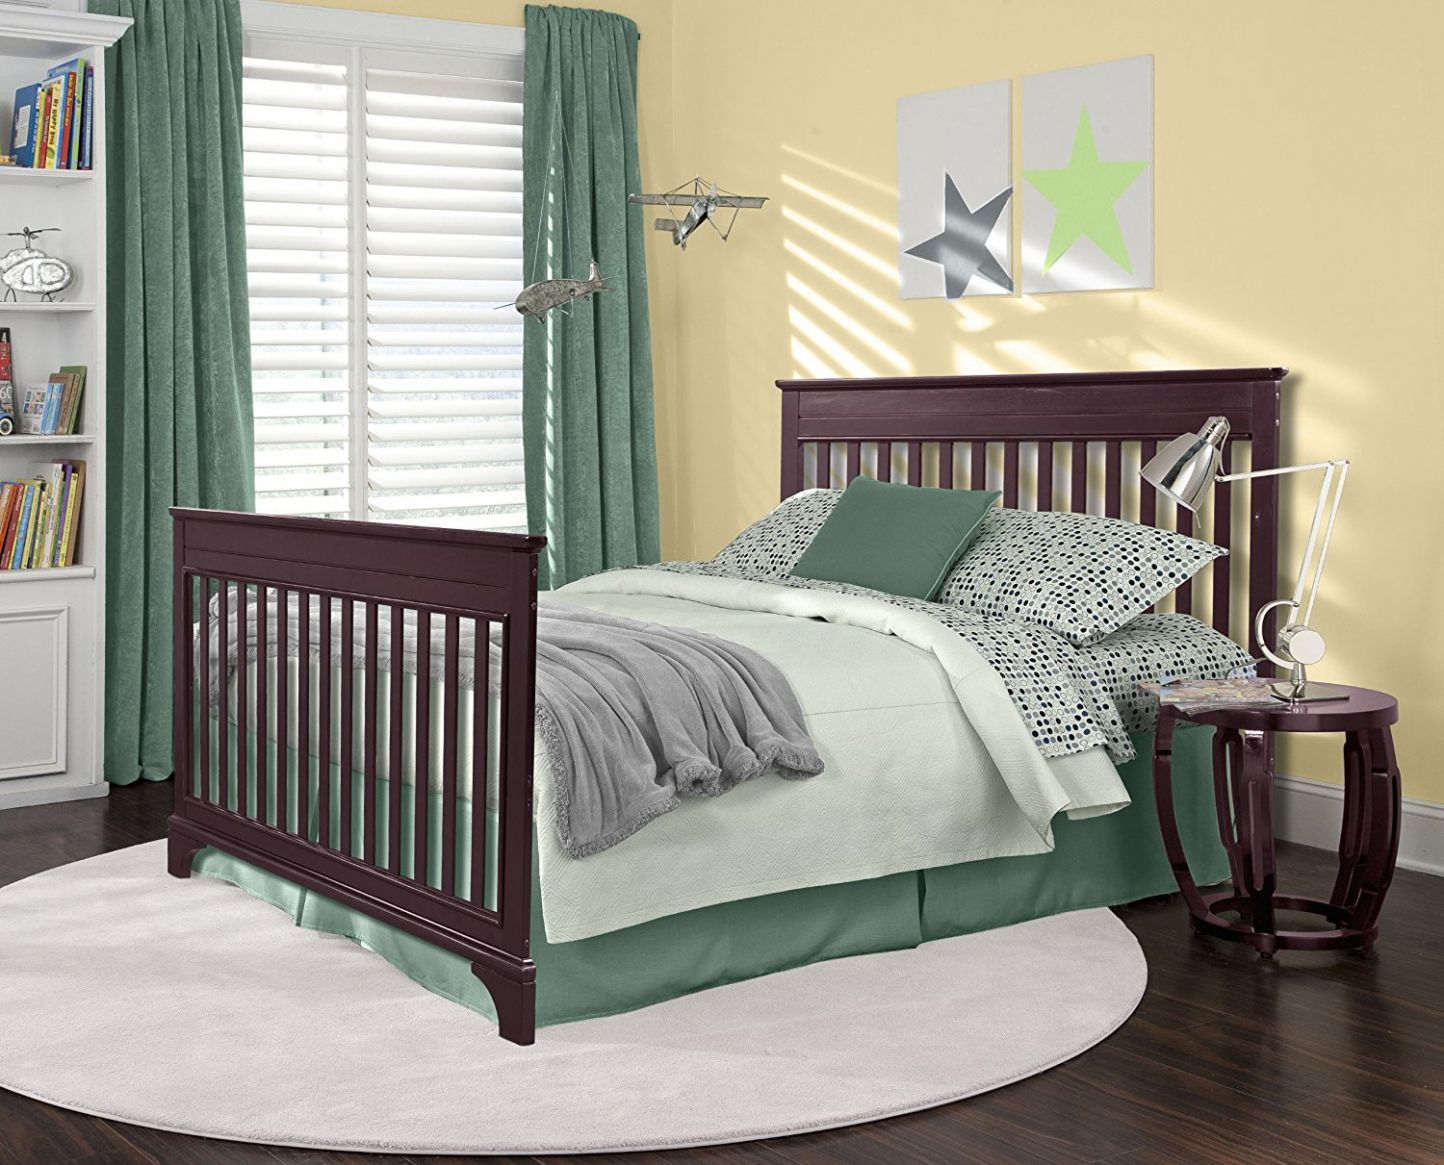 broyhill baby furniture lowes paint colors interior on lowes paint colors interior id=90209